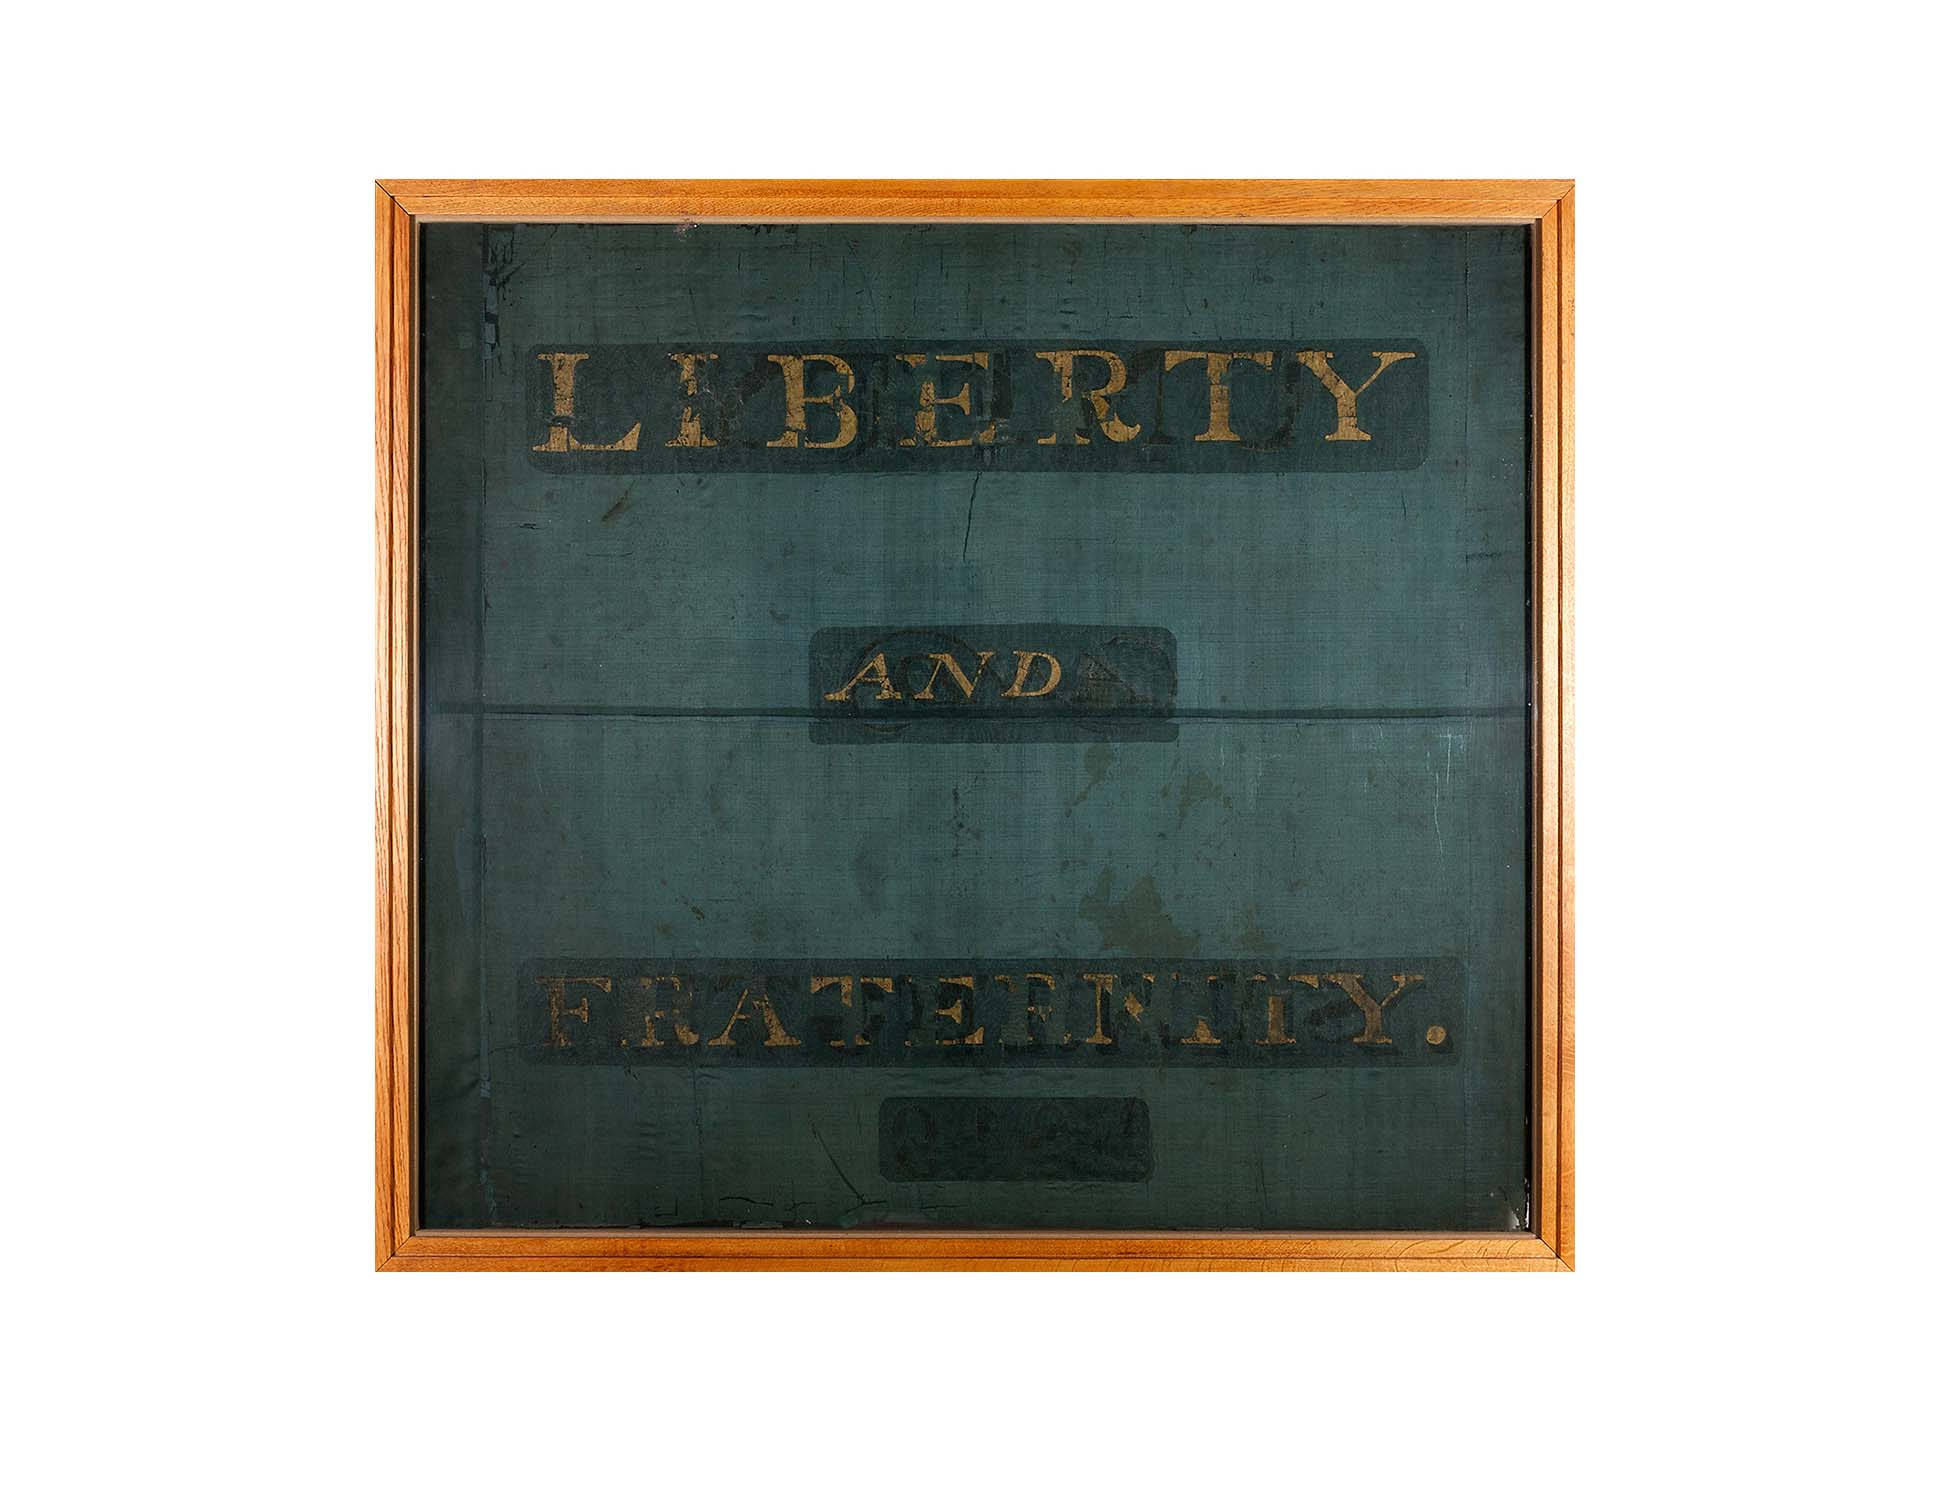 photo of a banner with Liberty and Fraternity written across it